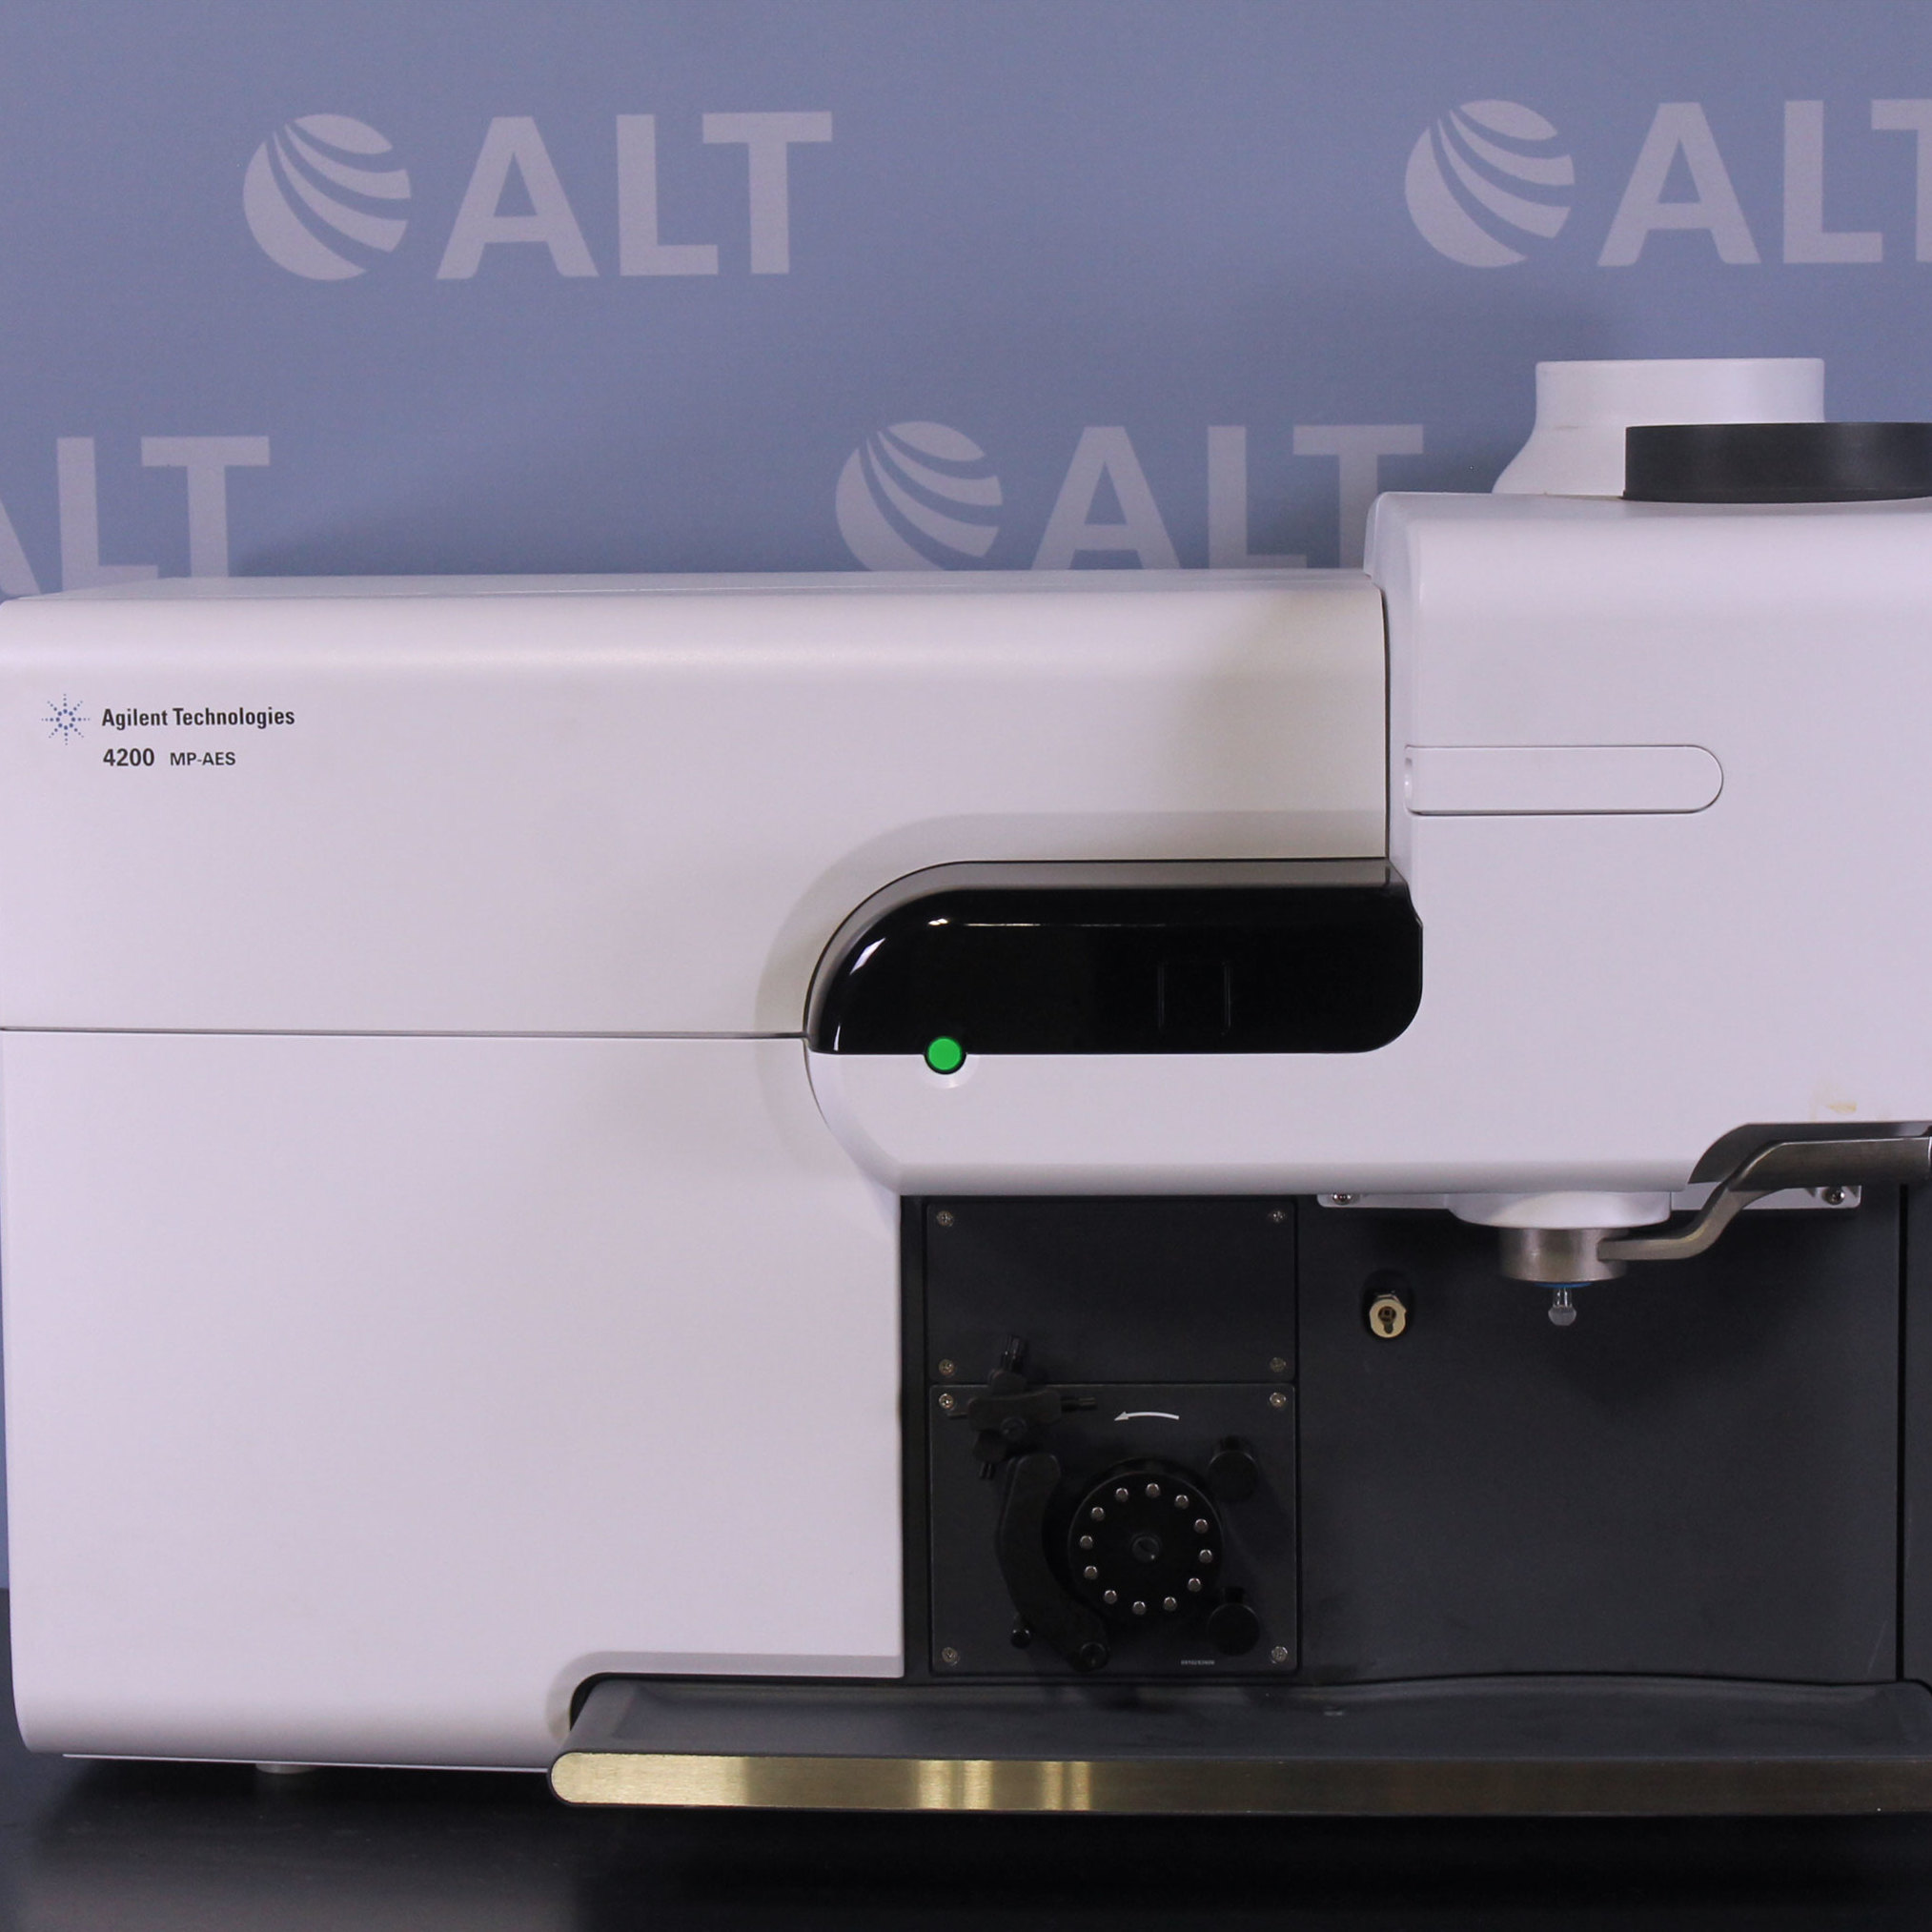 4200 MP-AES Atomic Emission Spectrometry